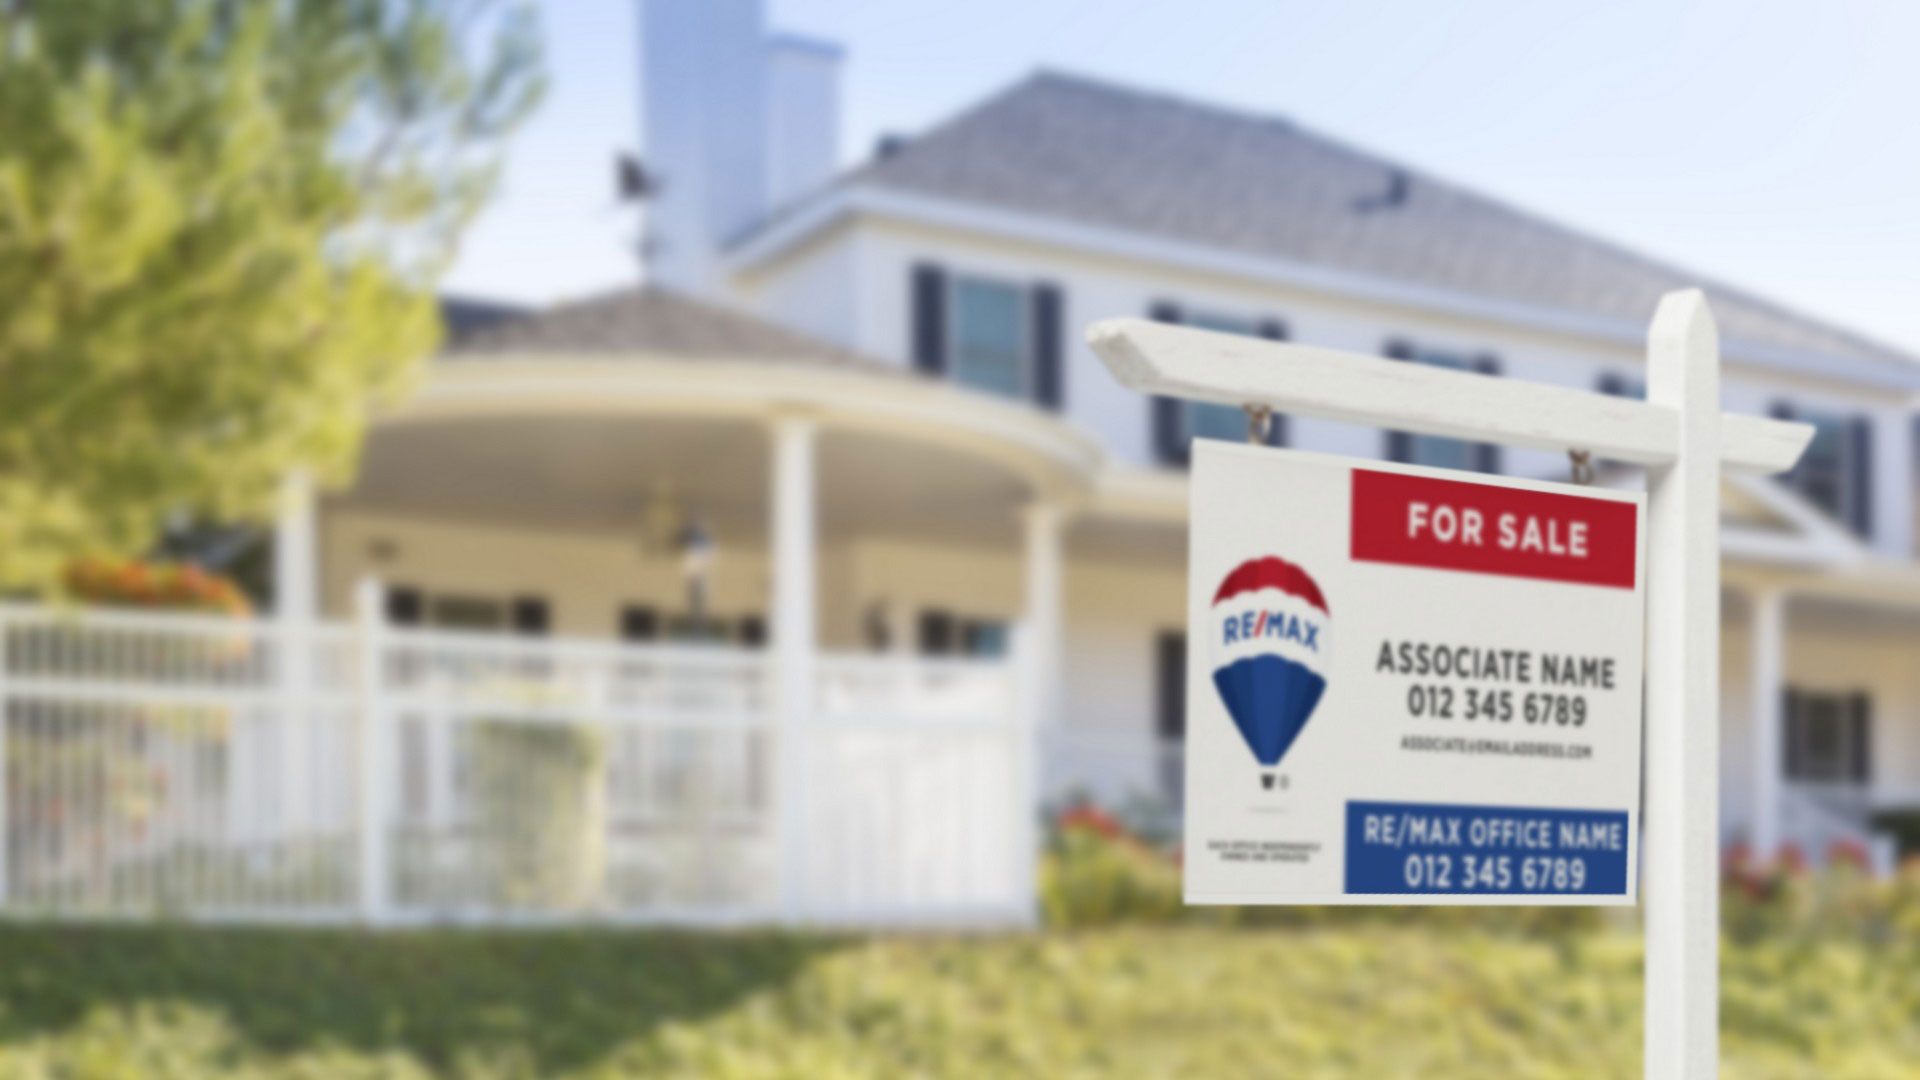 HOW USING A SIGNBOARD CAN HELP YOU SELL YOUR HOME